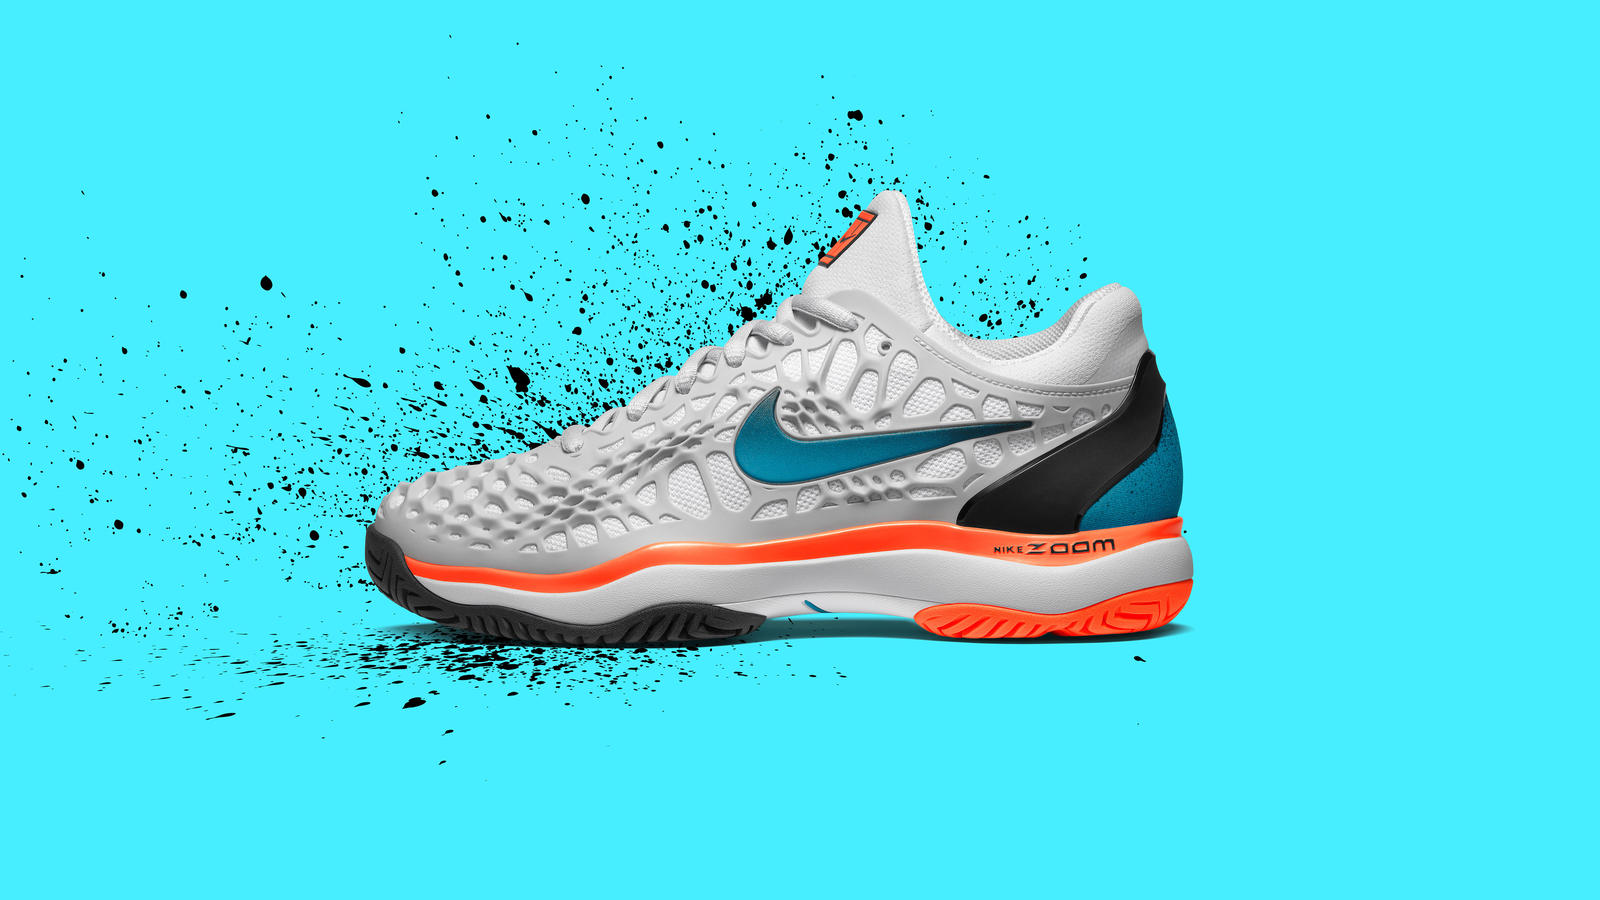 Nikecourt fresh pack 3 native 1600